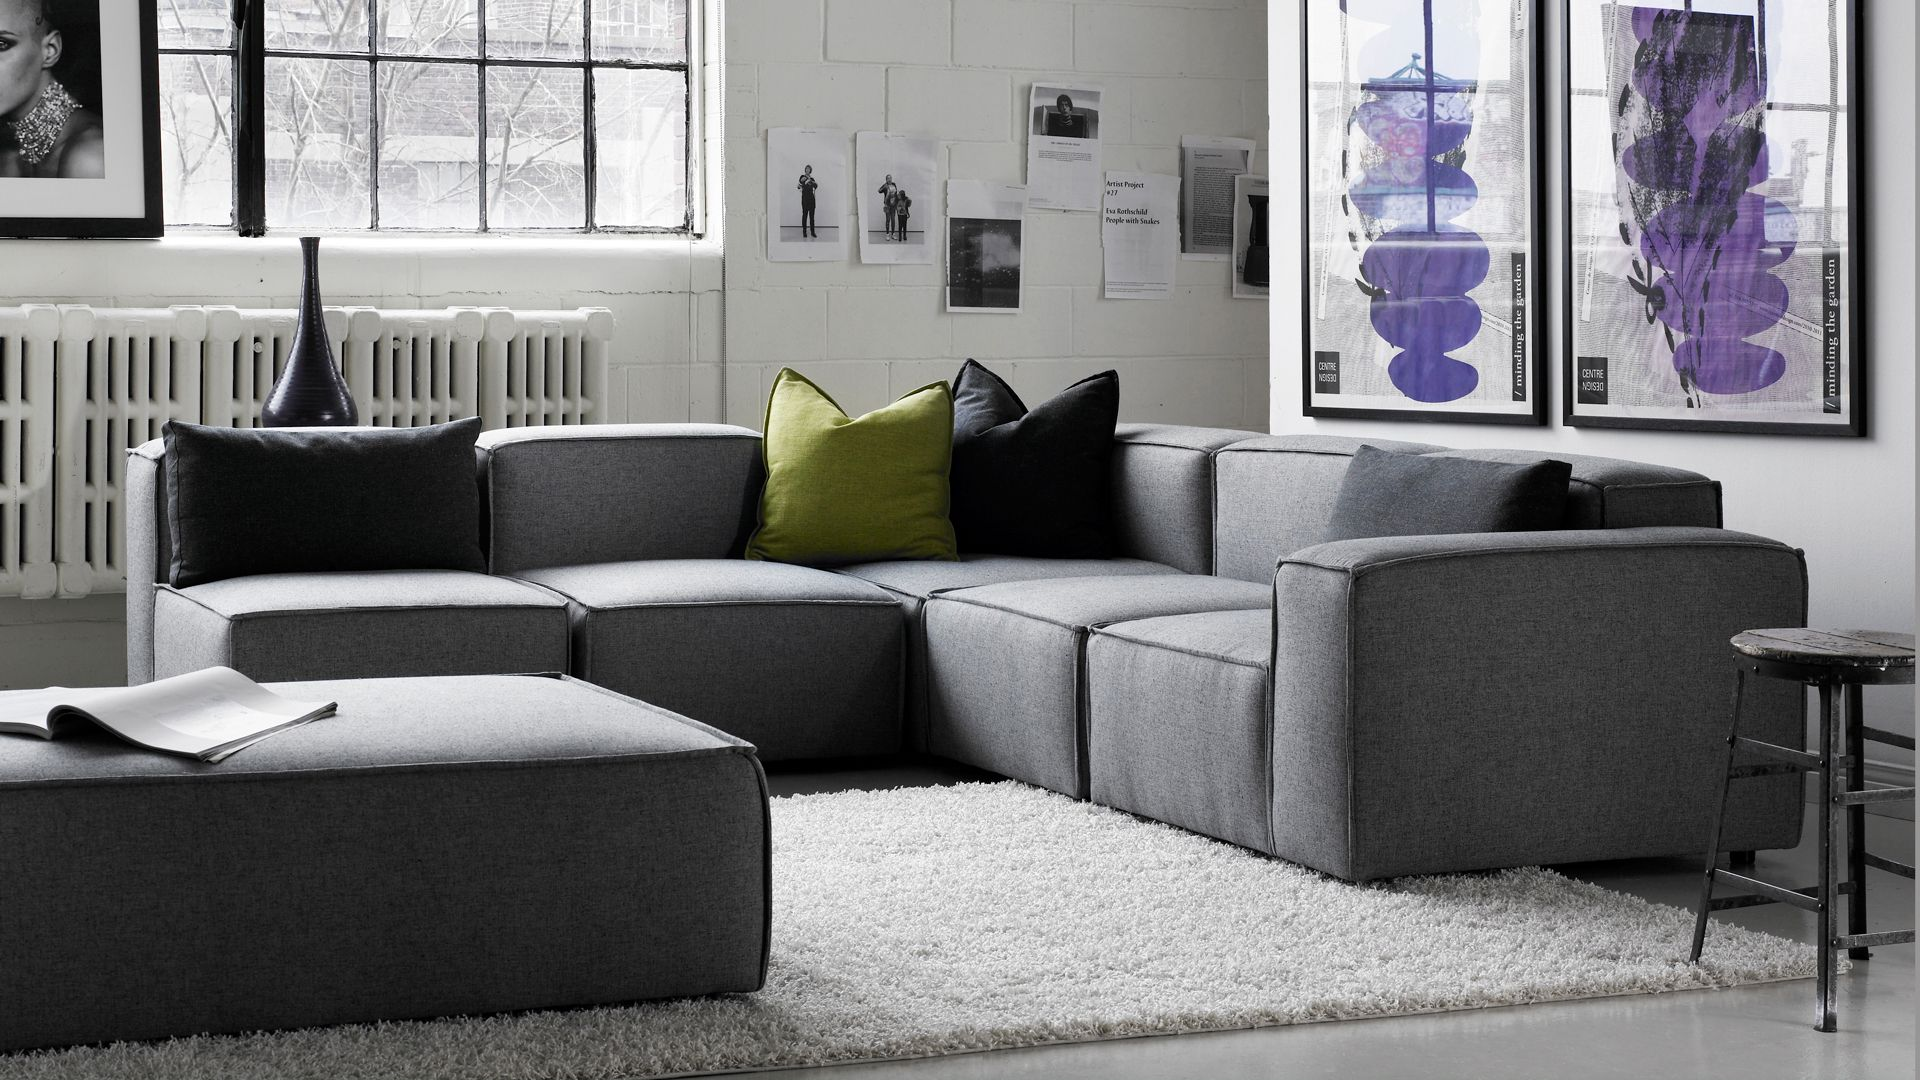 DOMINO modern modular sofa. Beautiful sofas inside and out ...